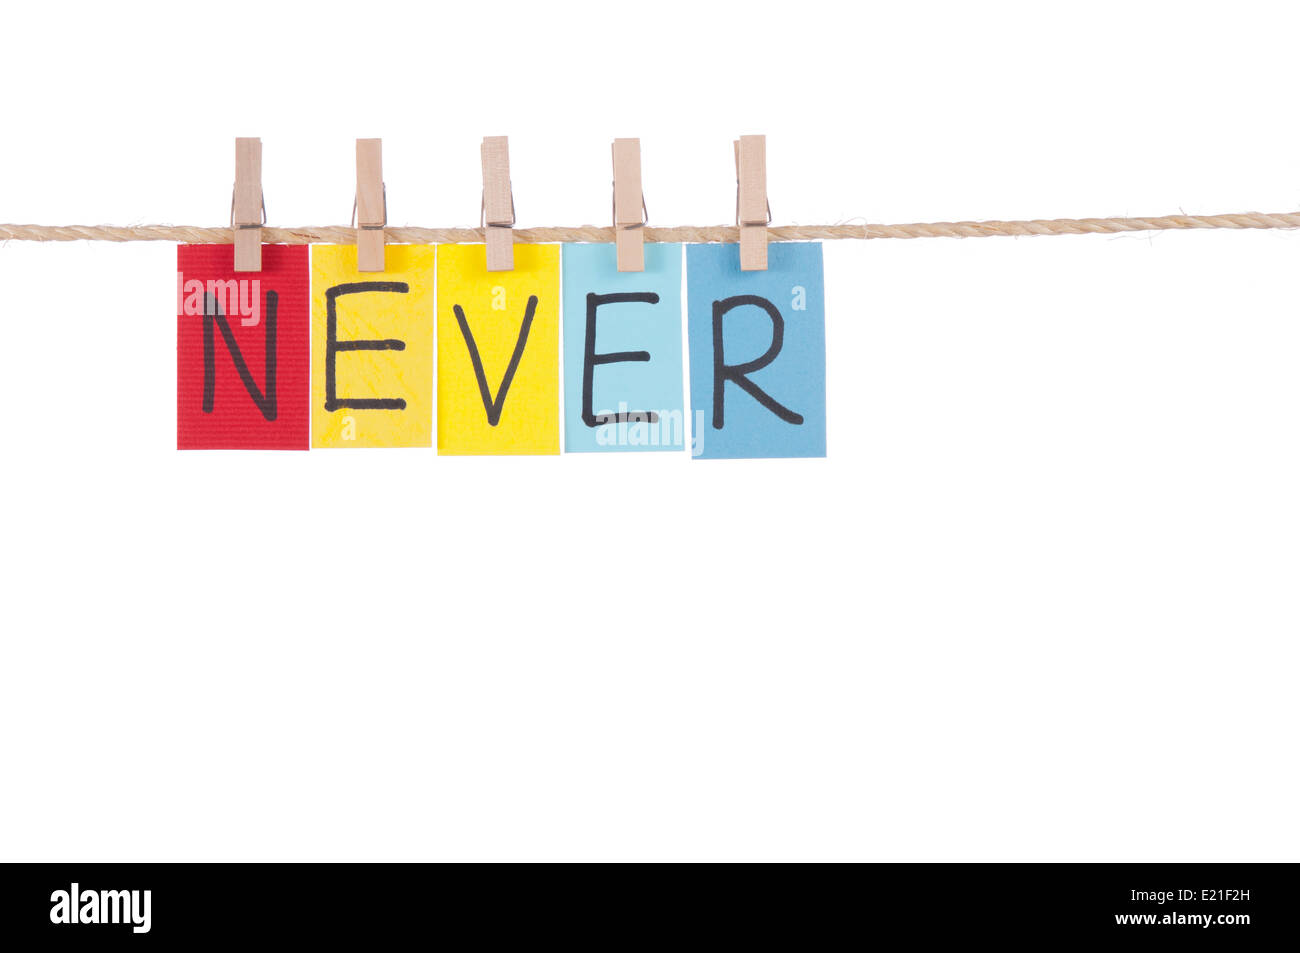 Never, Wooden peg  and colorful words - Stock Image